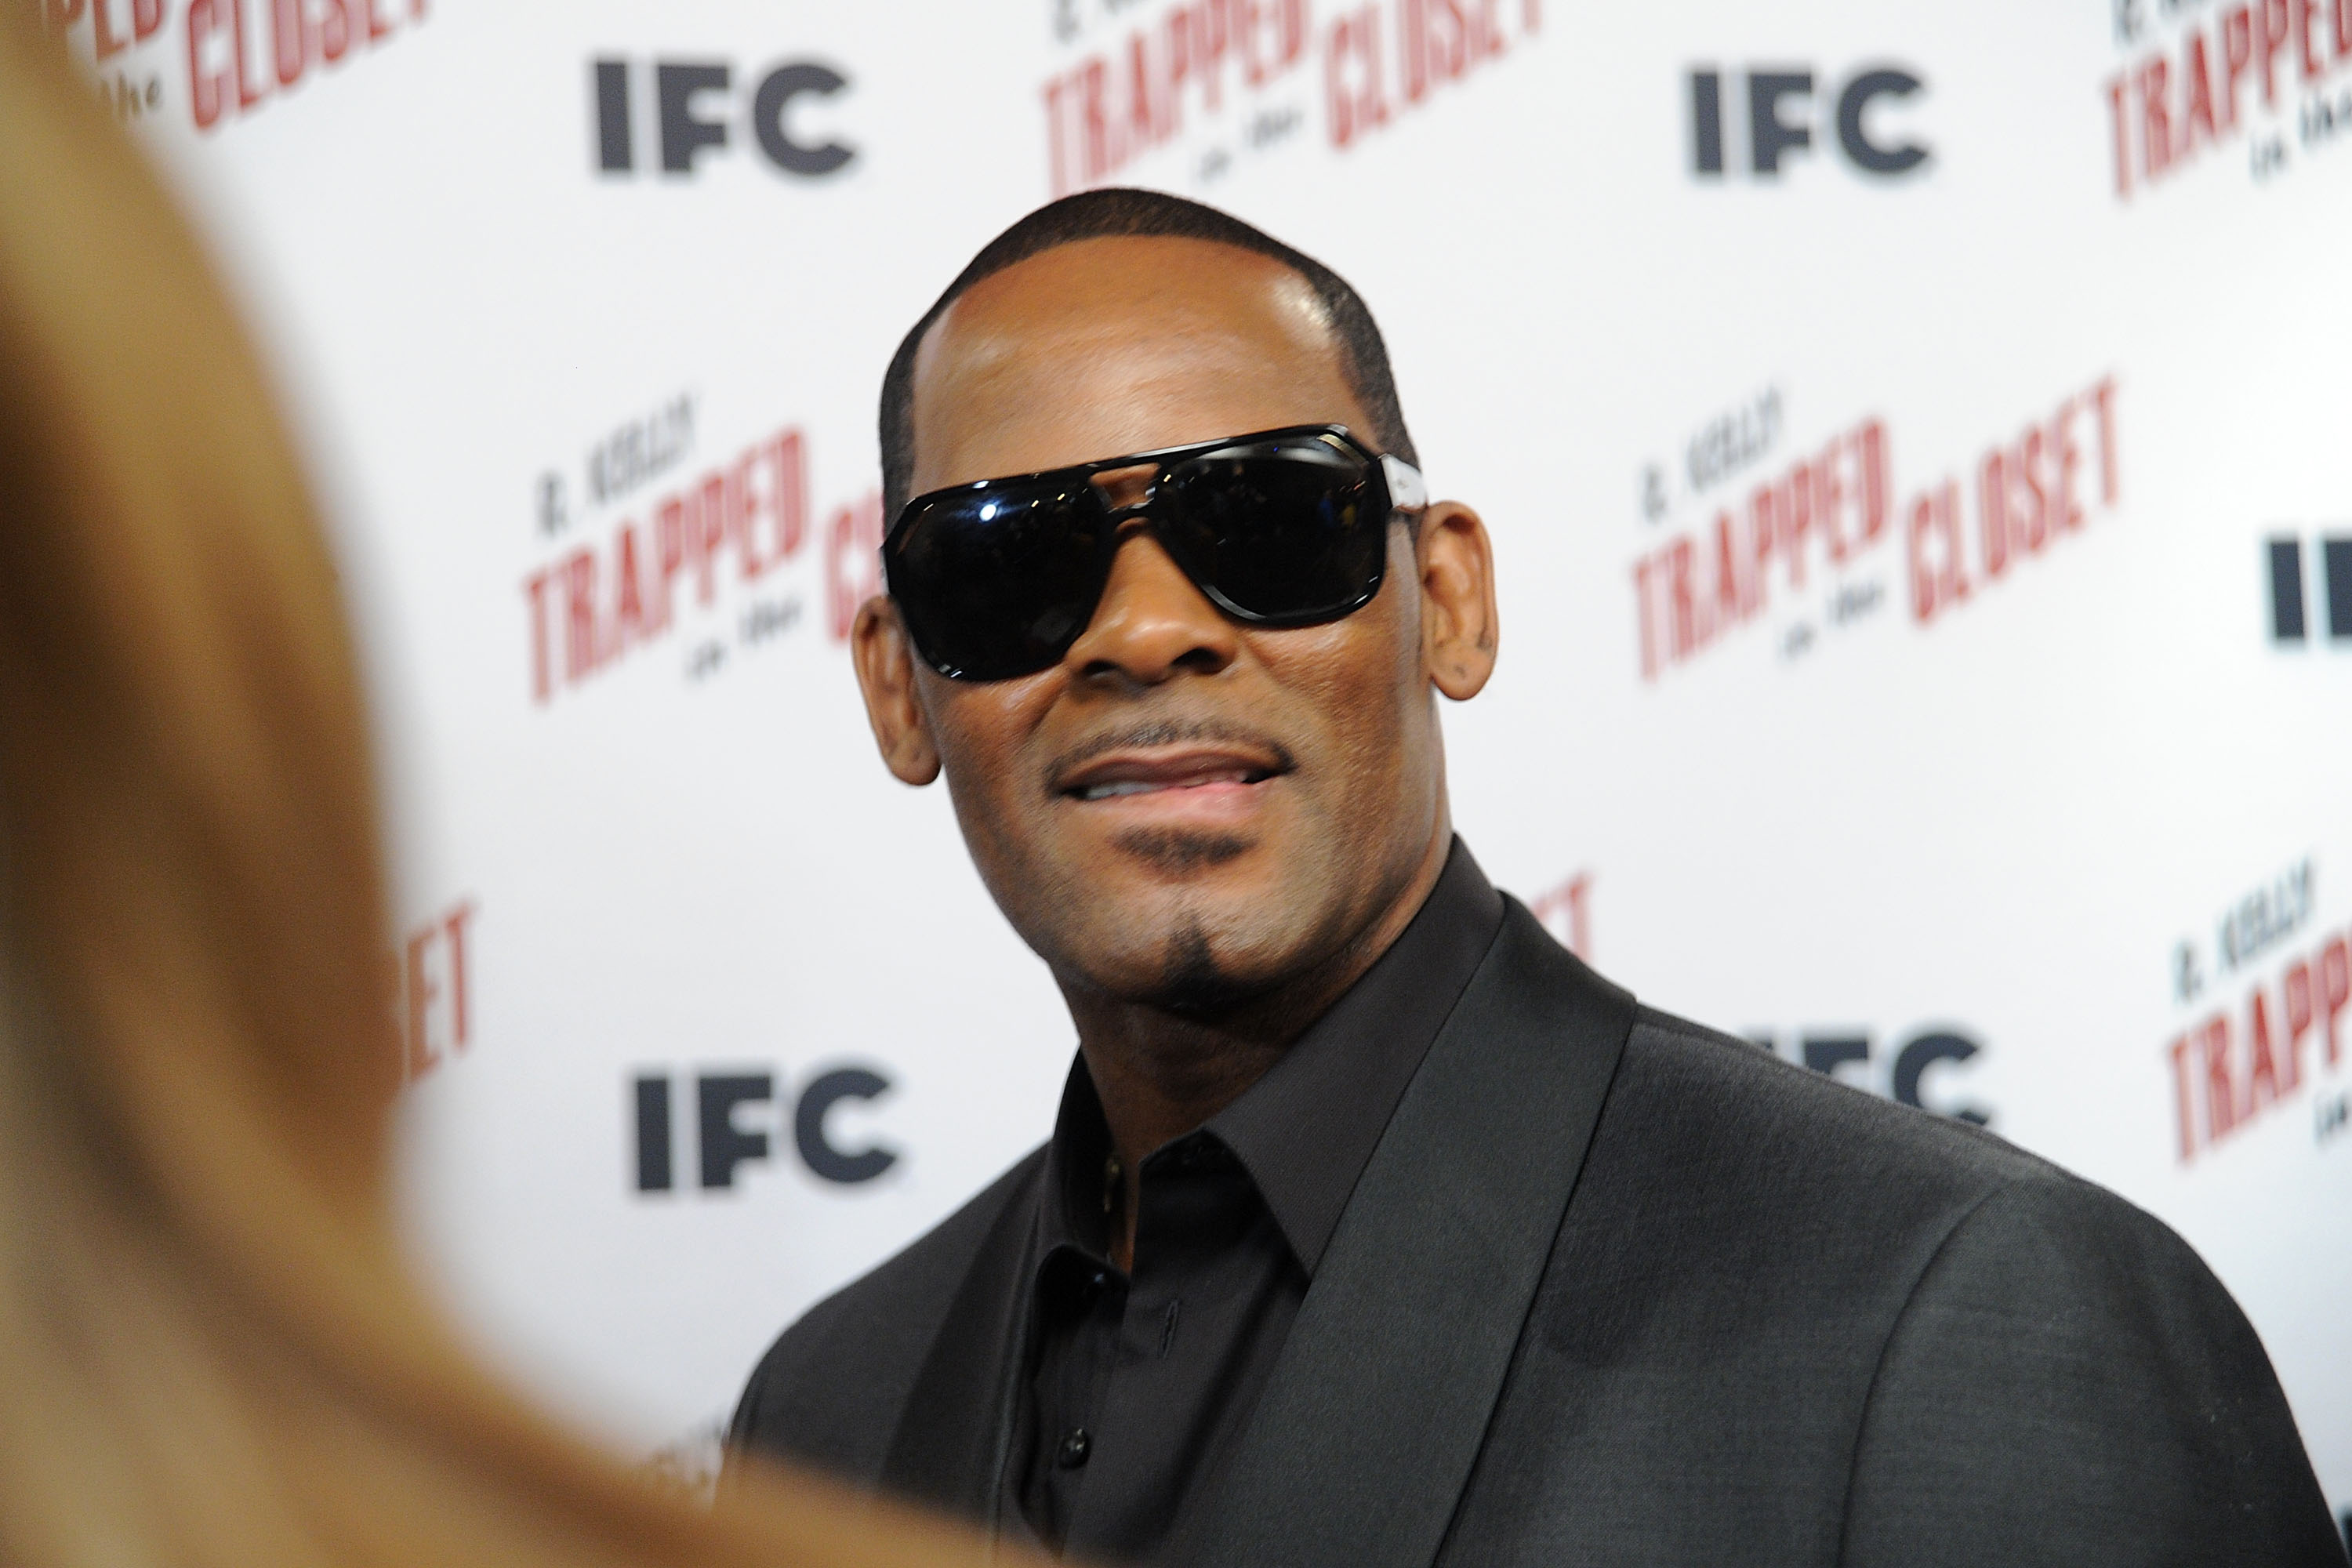 R. Kelly Claims Aaliyah's Mother Asked Him To Never Discuss His Relationship With Her Underage Daughter